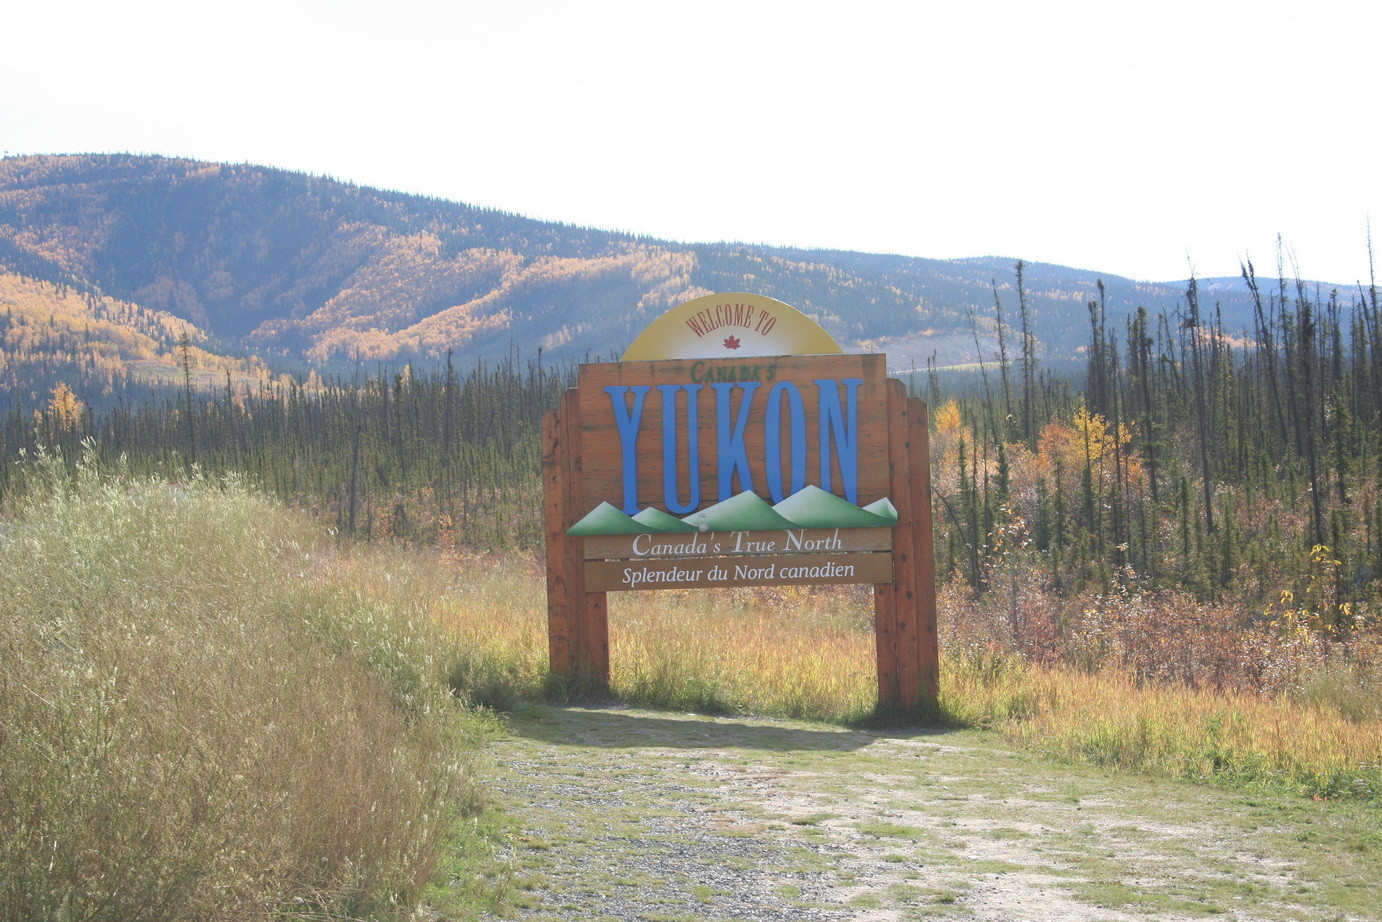 Auf dem Top of the World Highway kurz vor Dawson City